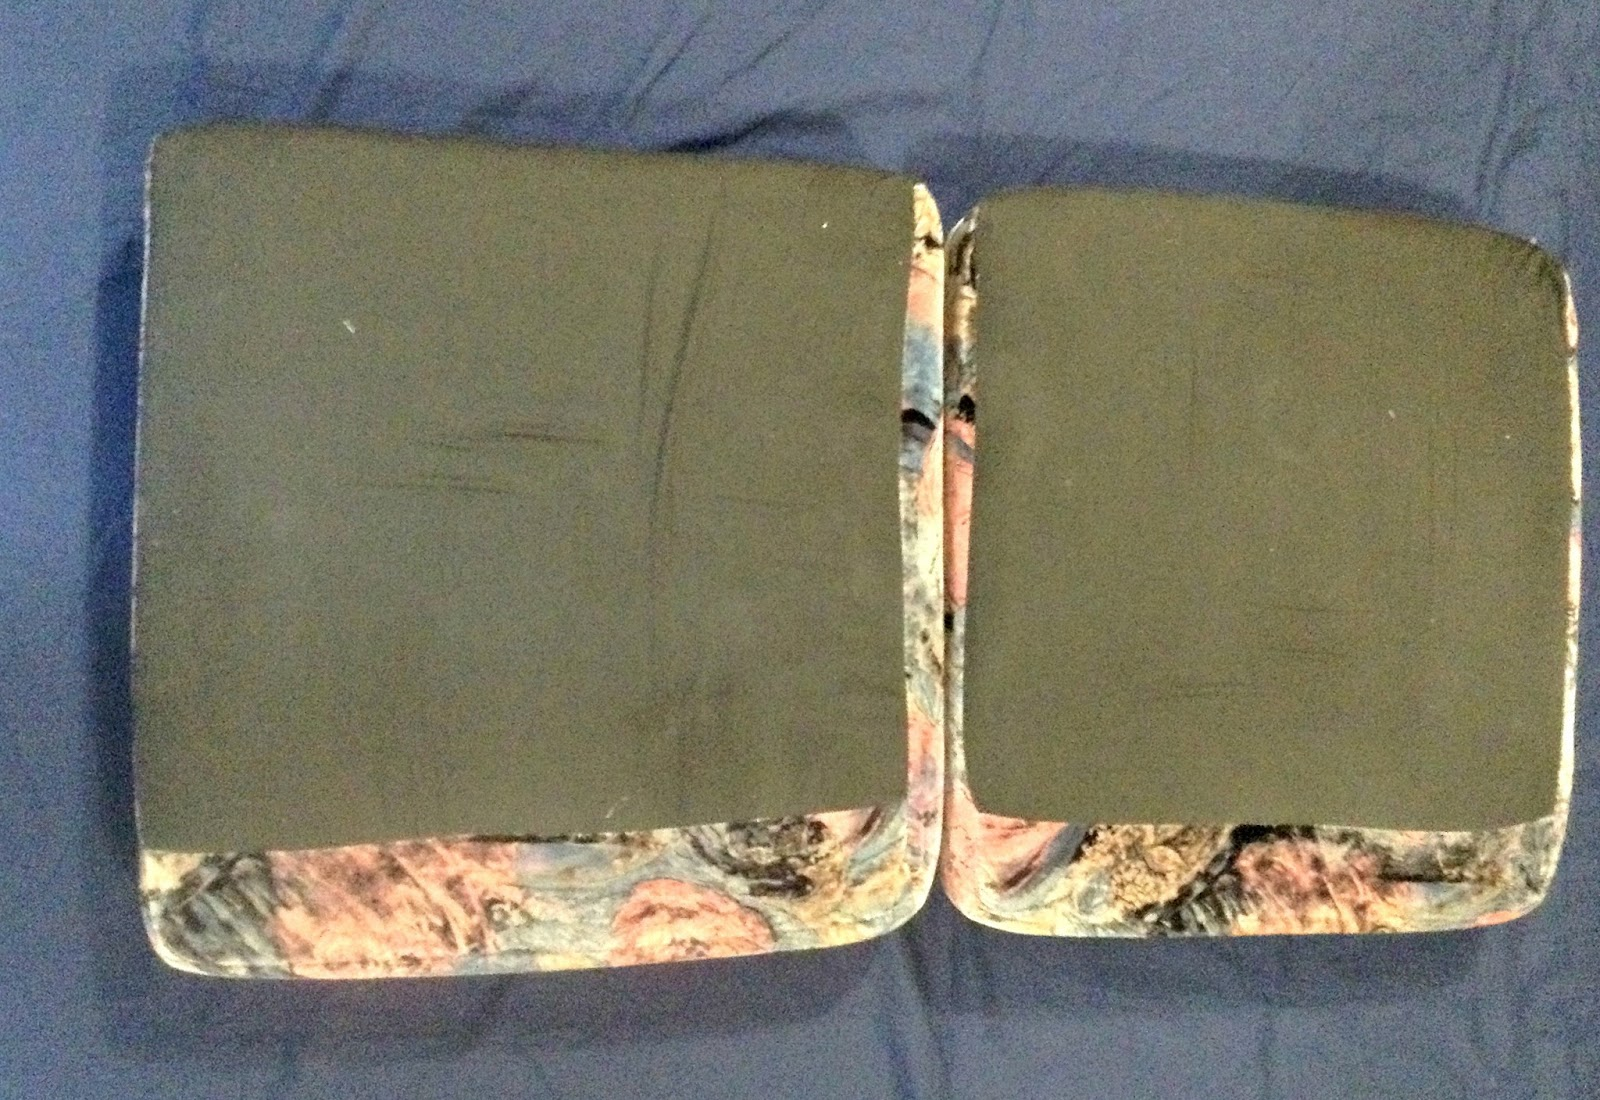 Lay Out The Second Sheet And Your Two Seat Cushions Upside Down On It Side By